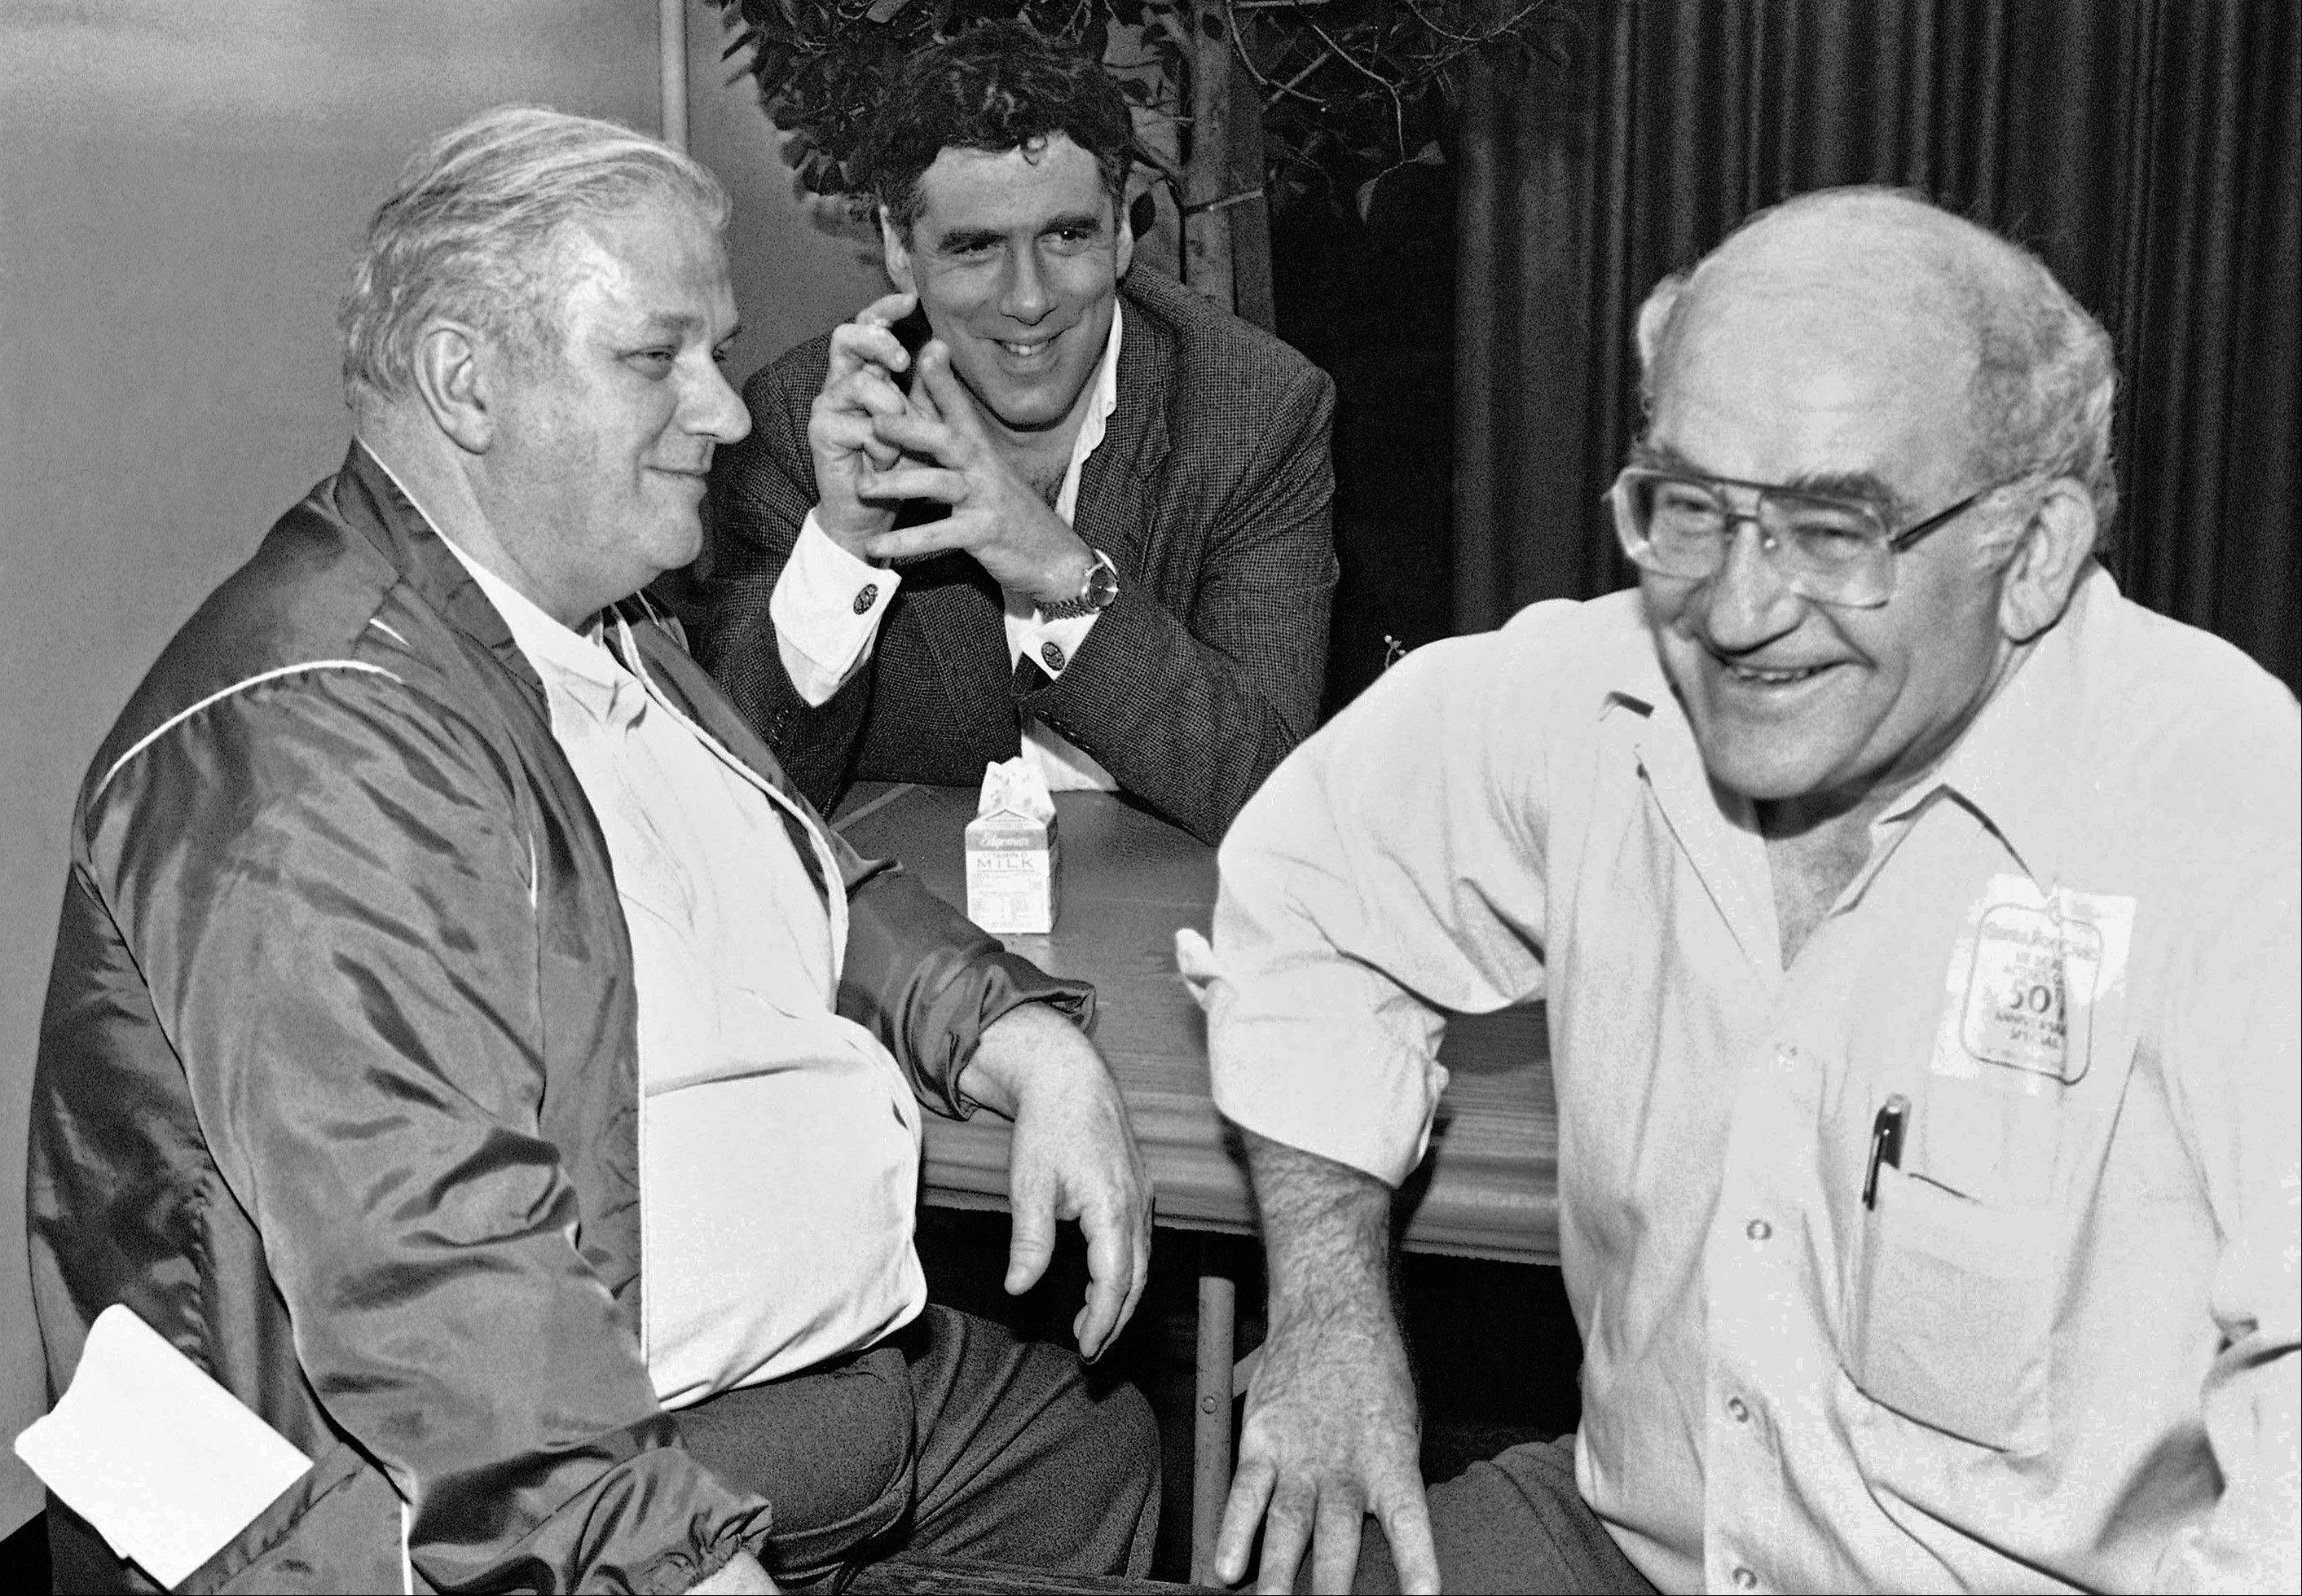 From left, actors Charles Durning, Eliott Gould and Screen Actors Guild President Ed Asner take a break before the filming of the 50th Anniversary Special celebrating the guild in Santa Monica, Calif. Durning, the two-time Oscar nominee who was dubbed the king of the character actors for his skill in playing everything from a Nazi colonel to the pope, died Monday, Dec. 24, 2012 at his home in New York City. He was 89.